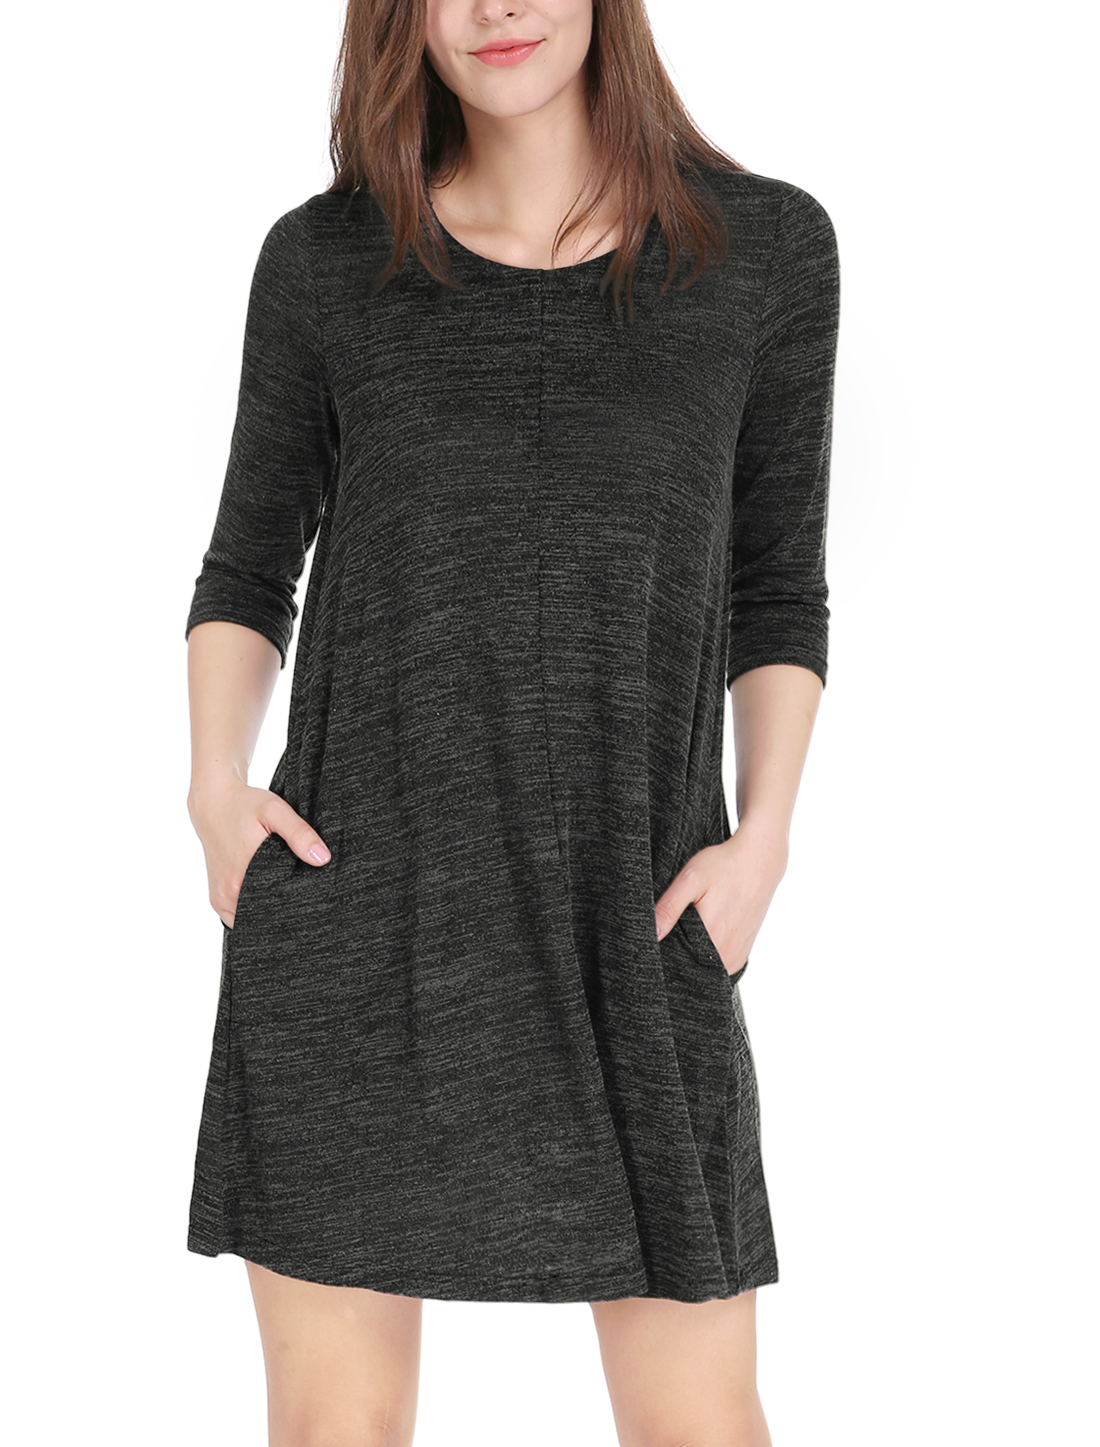 Women 3/4 Sleeves Round Neck Above Knee Loose T-shirt Dress Black XS